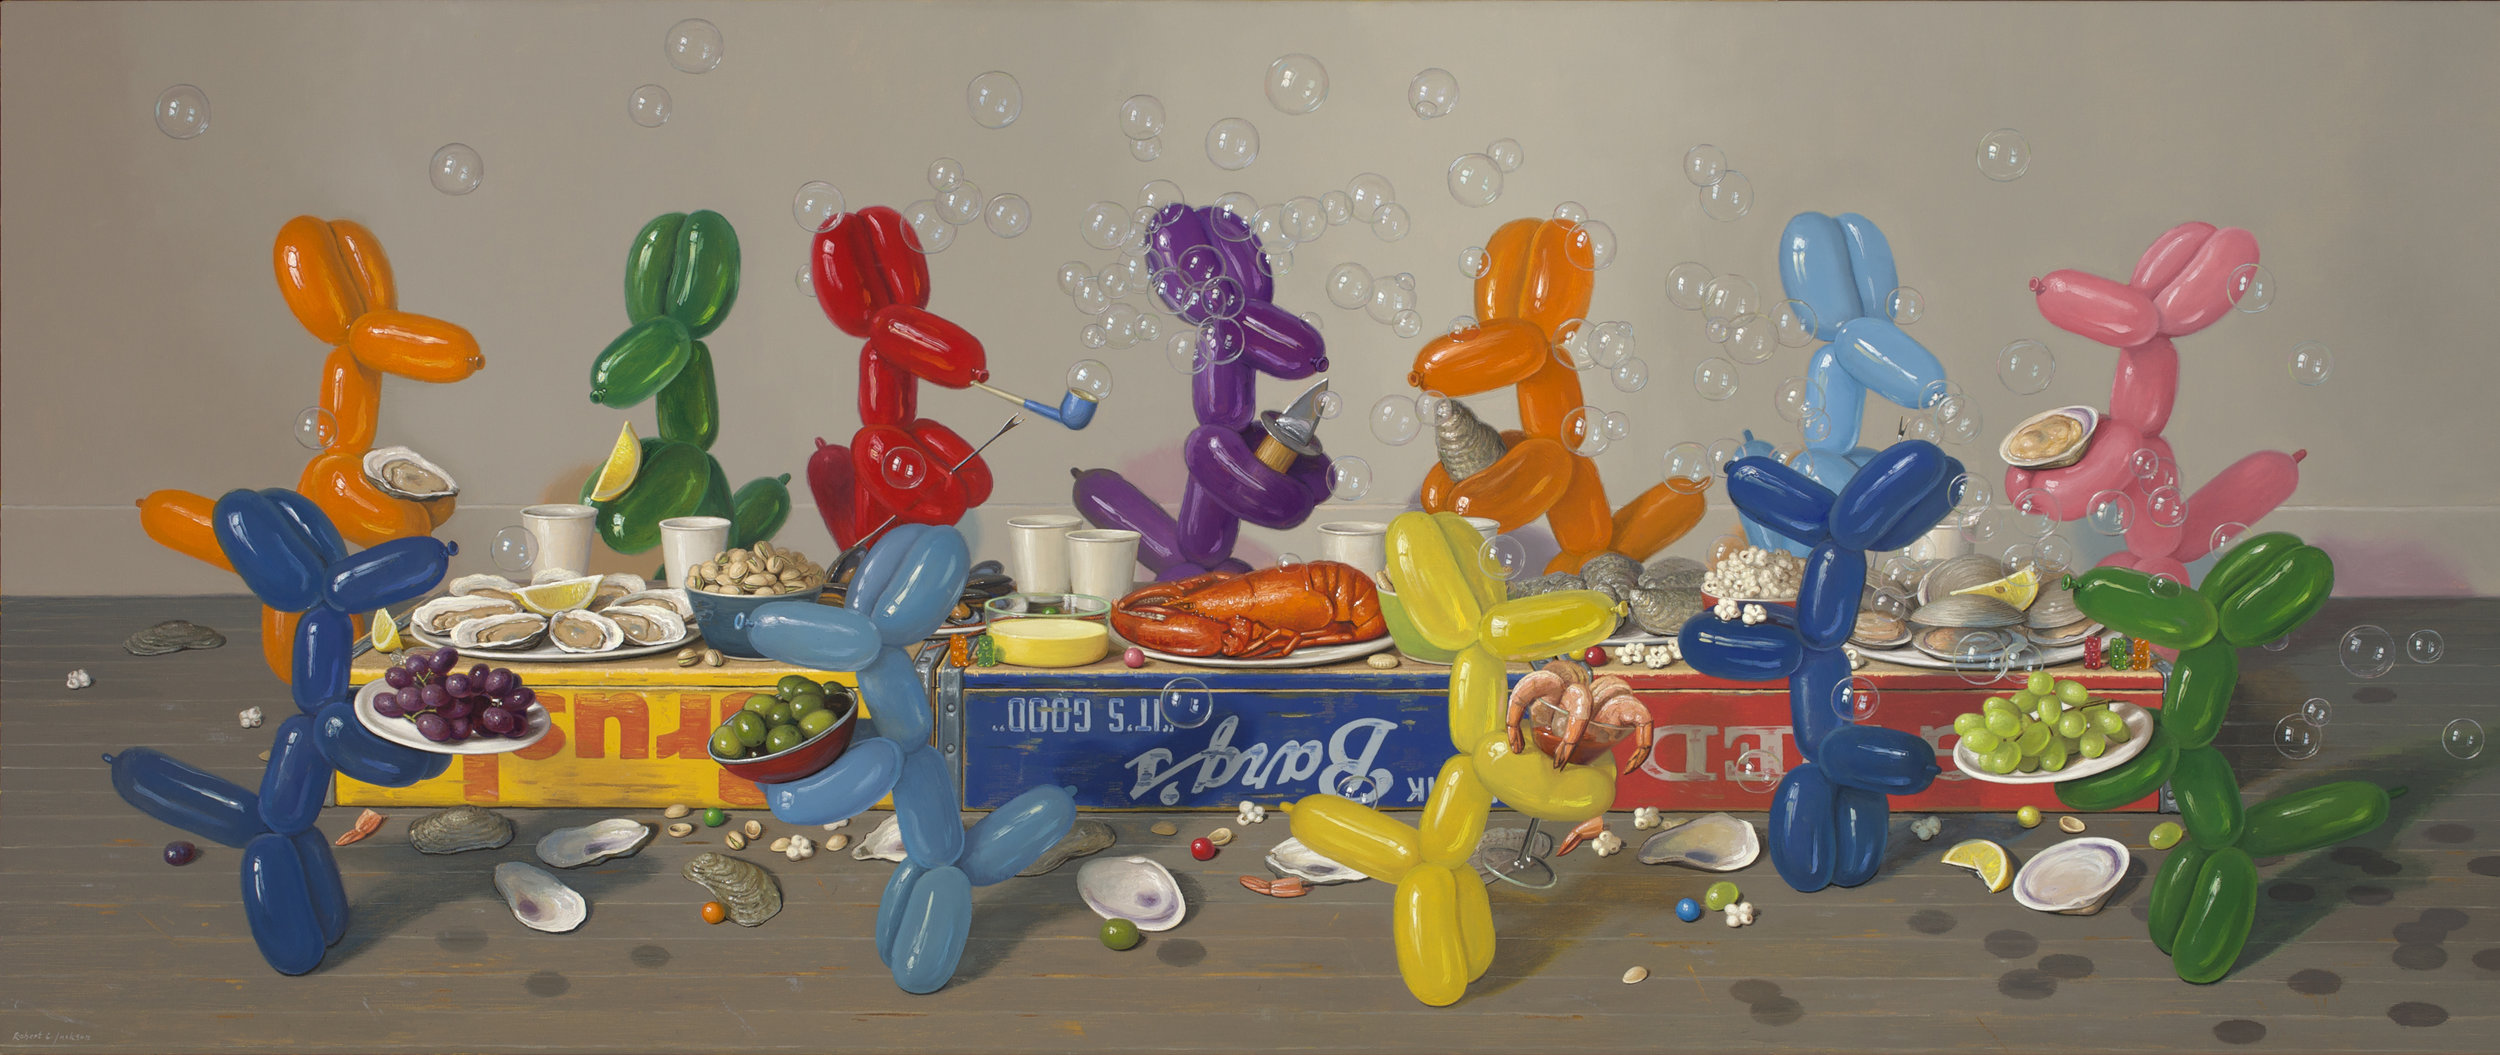 "Enough With the Bubbles, Oil on linen 30"" x 72"""